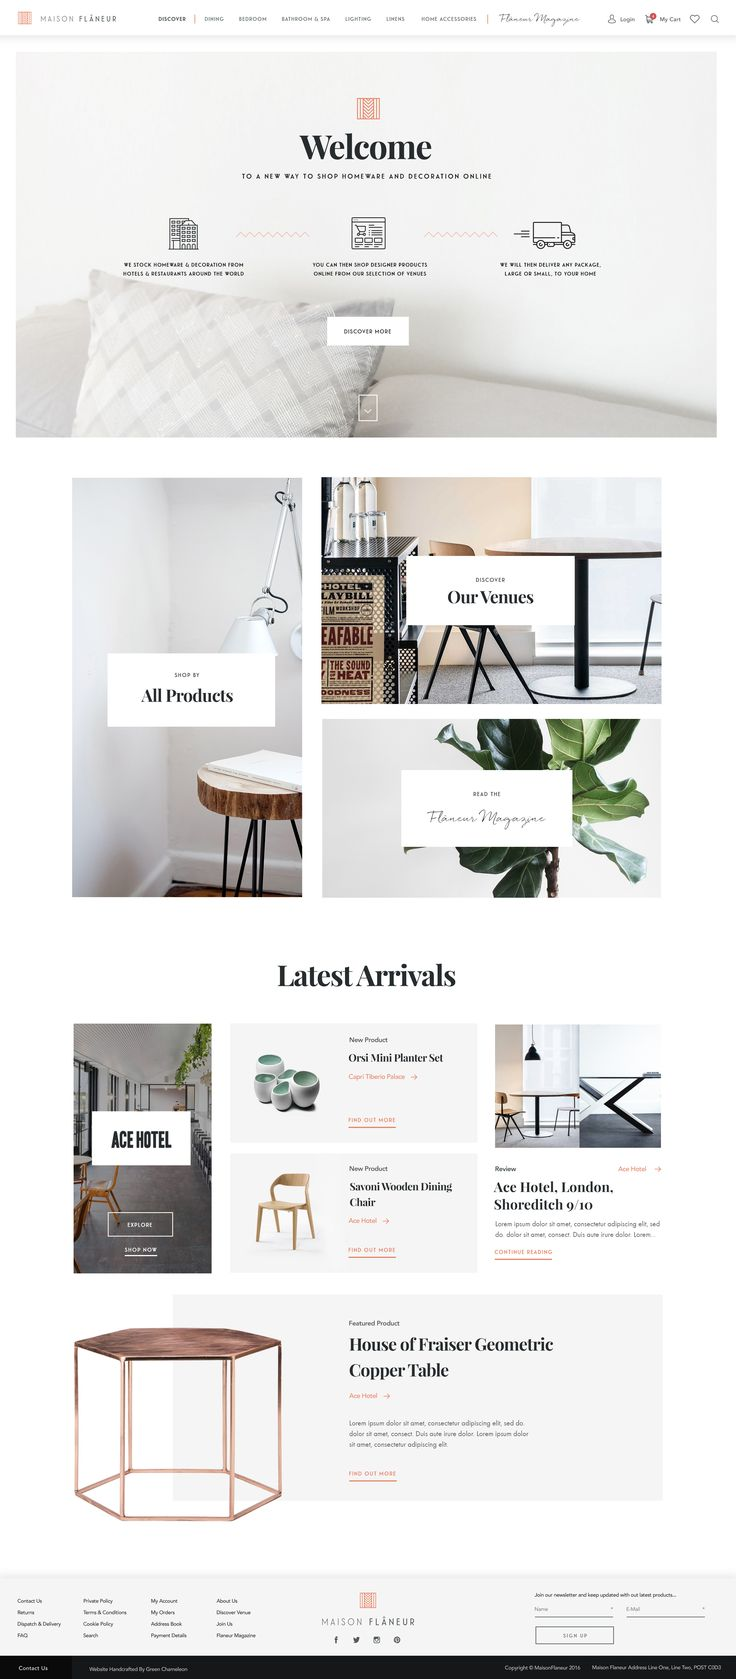 icon shot x light maison flneur homepage - Best Home Page Design